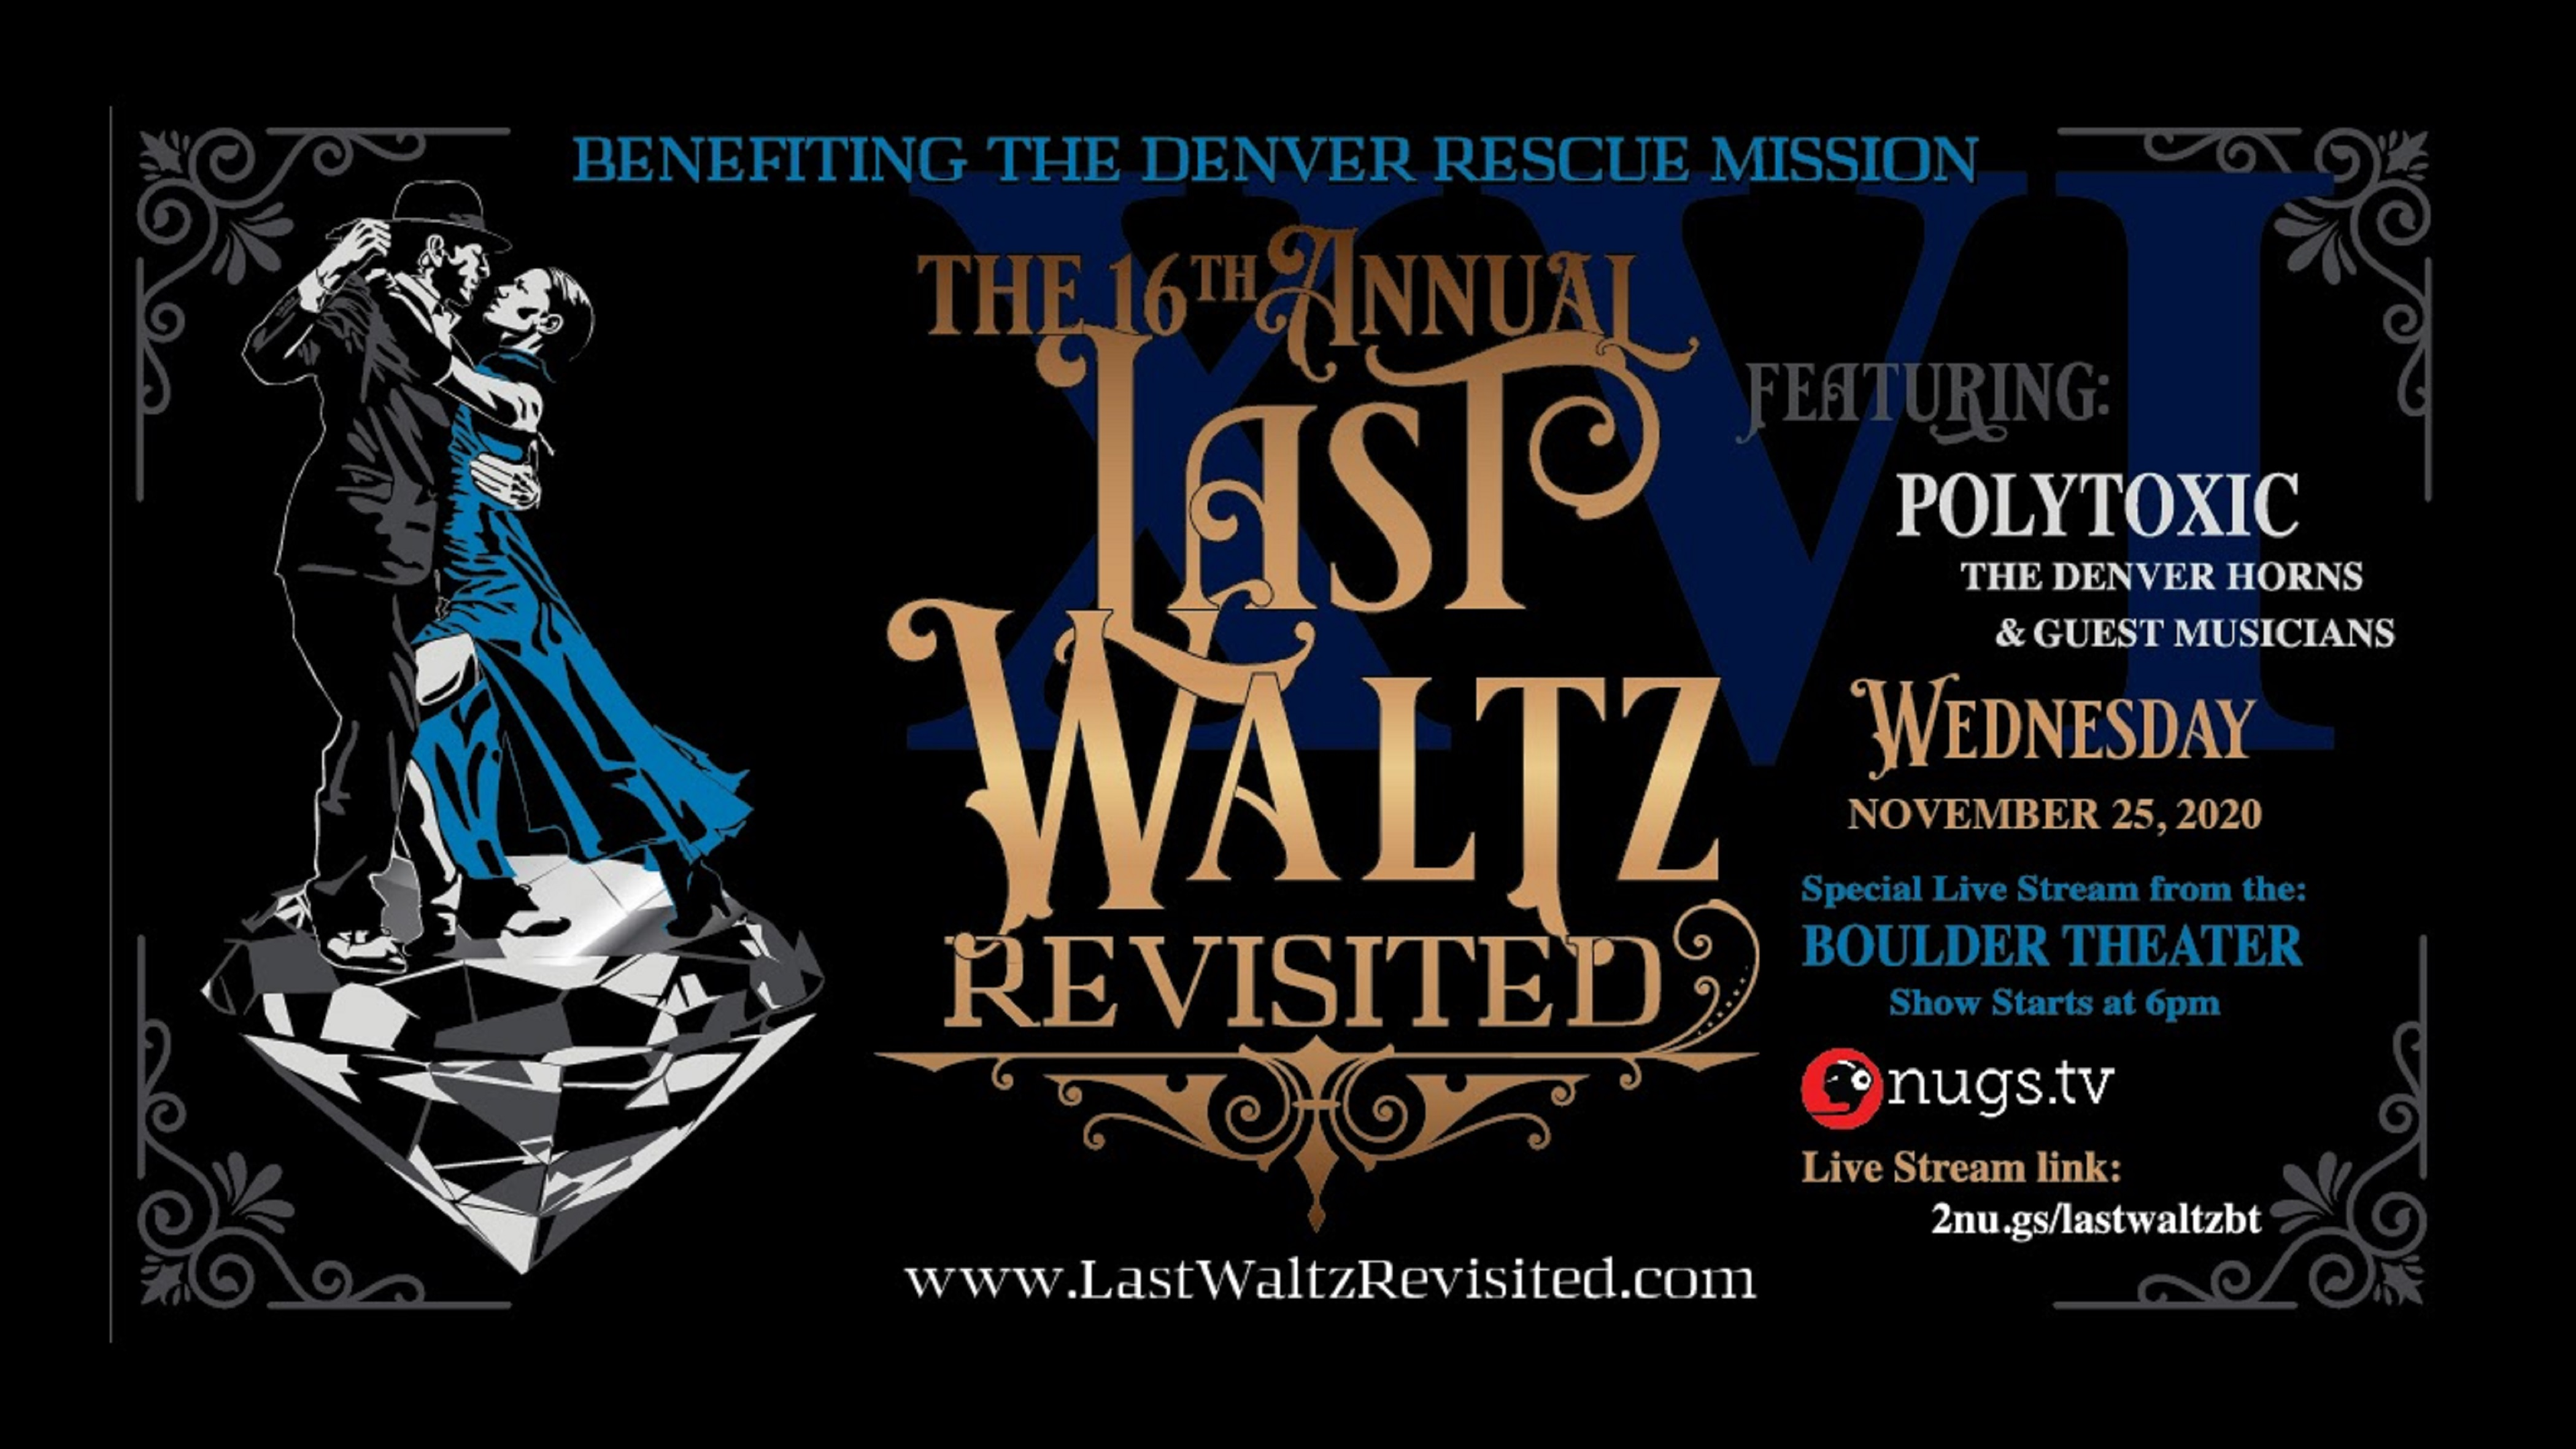 The 16th Annual Last Waltz Revisited from Boulder Theater - Livestream